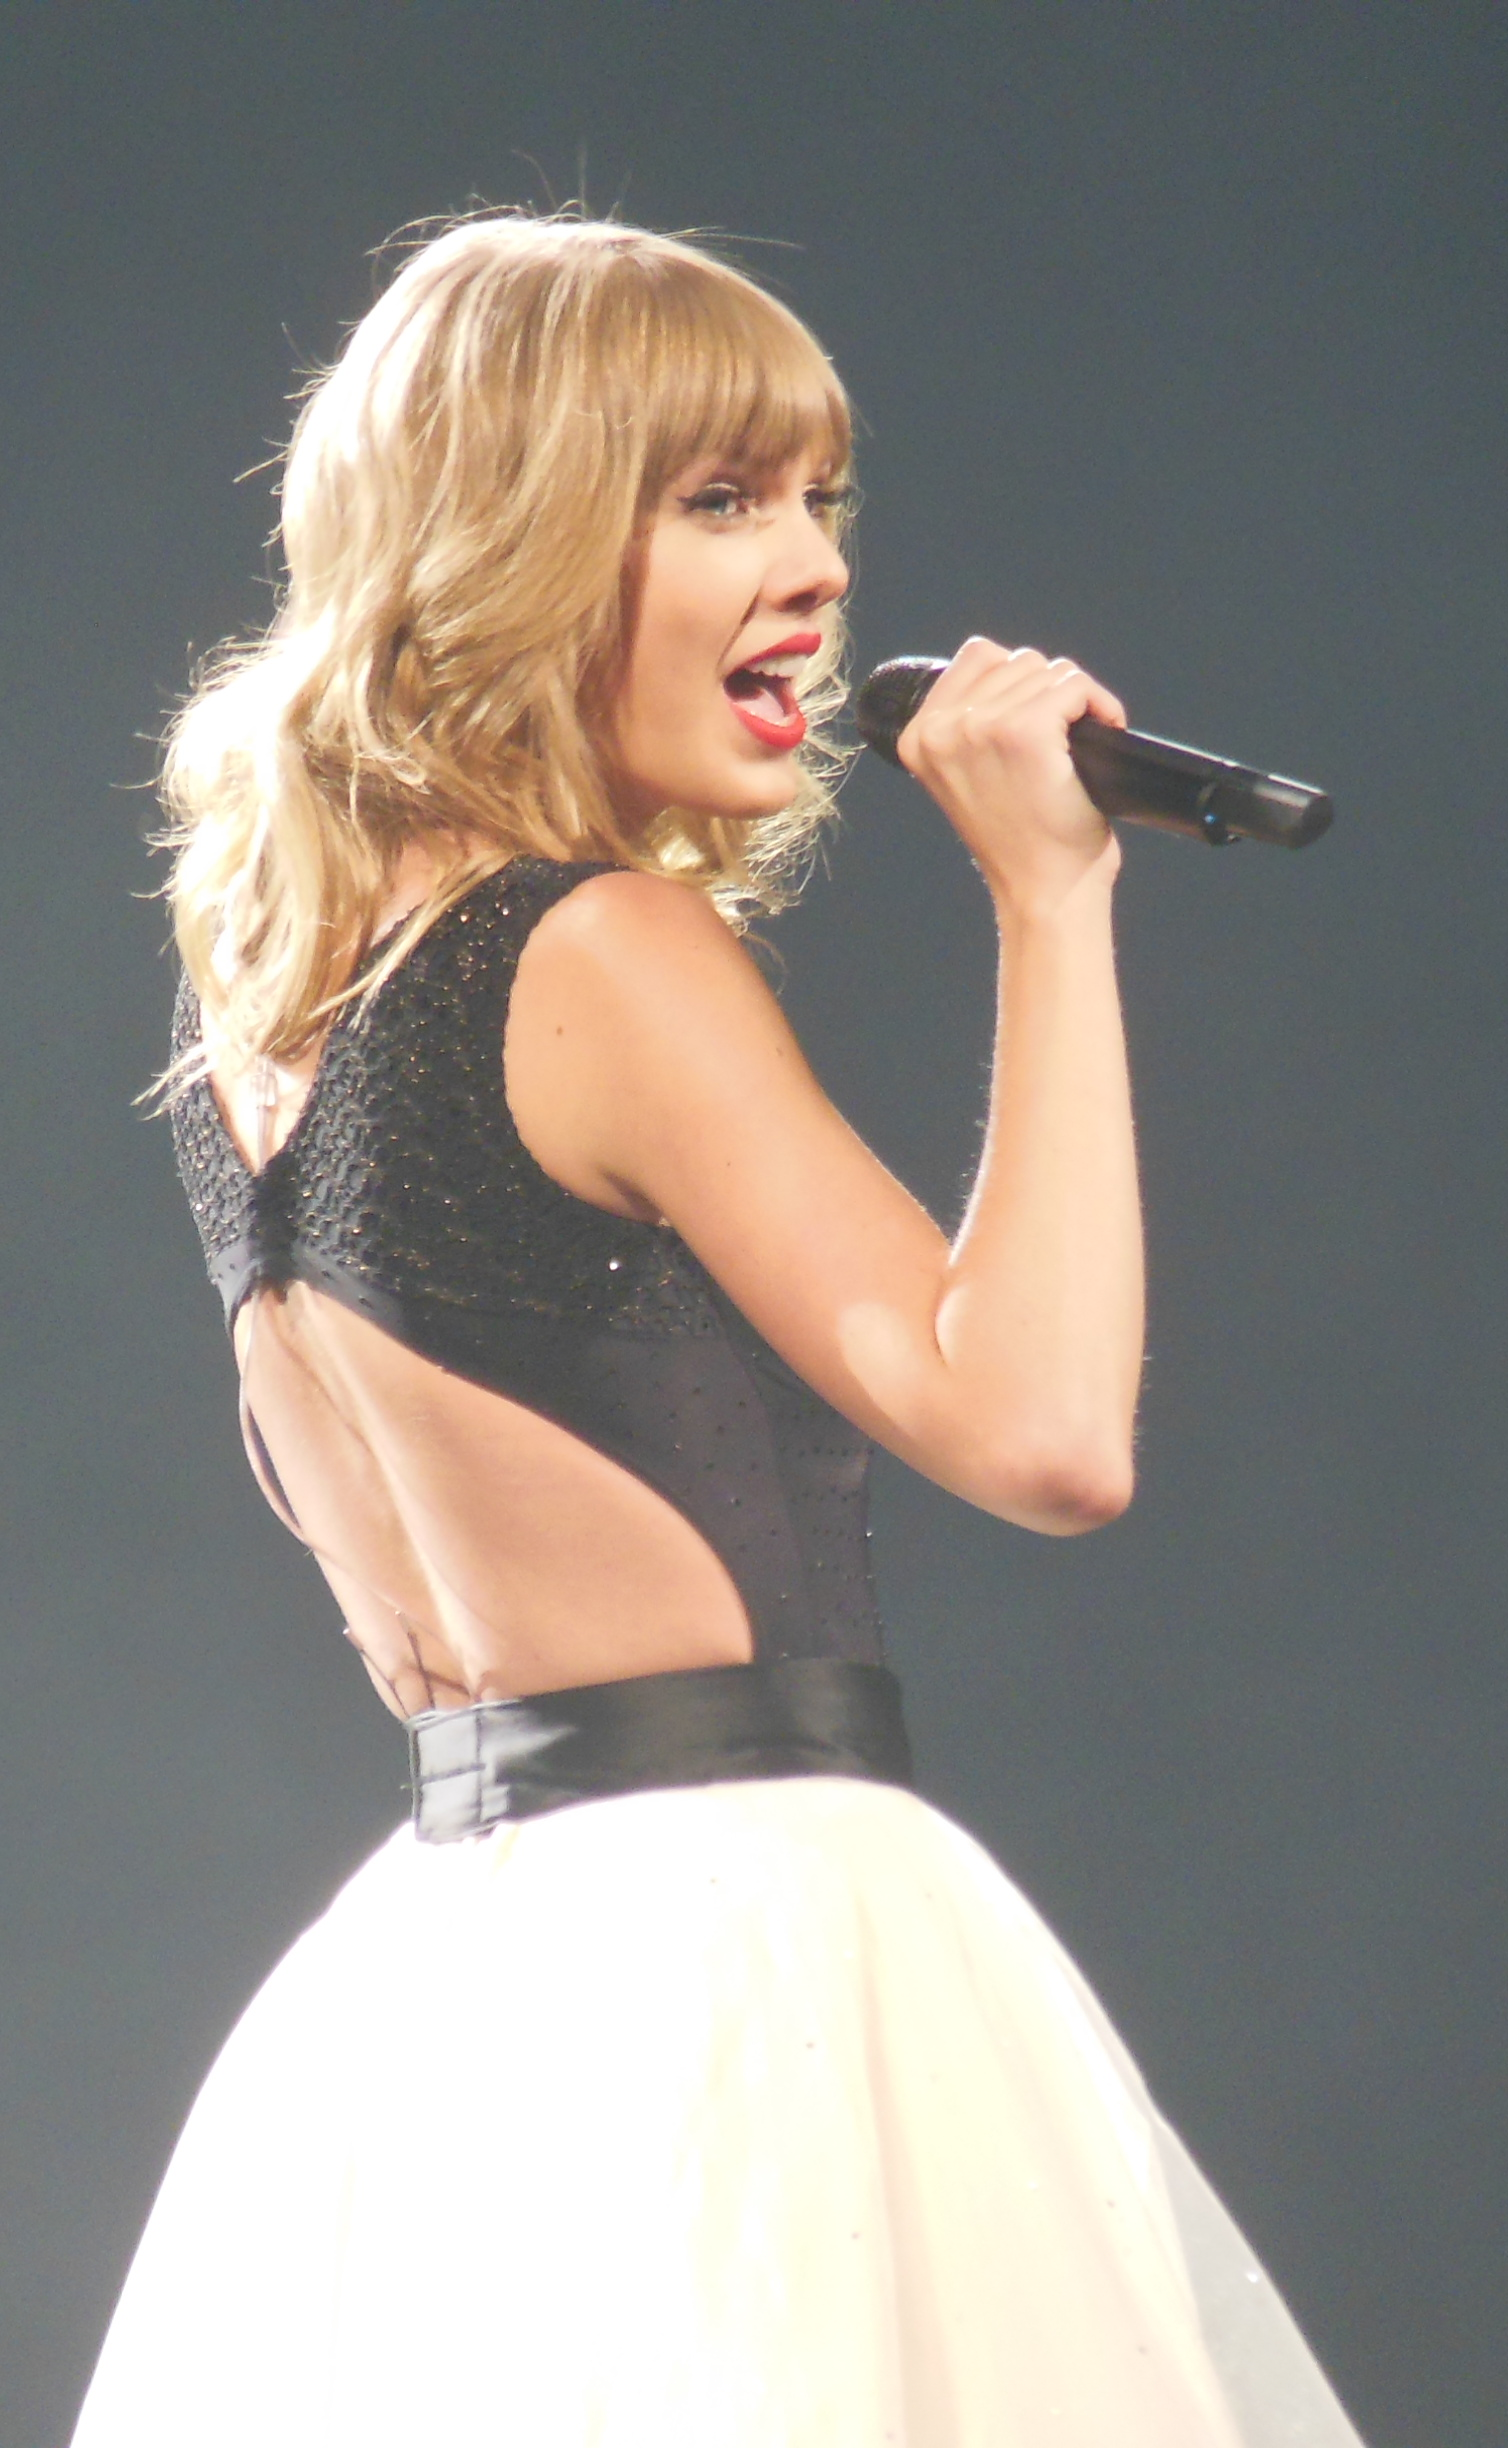 File:Swift performing Treacherous during the Red Tour.jpg